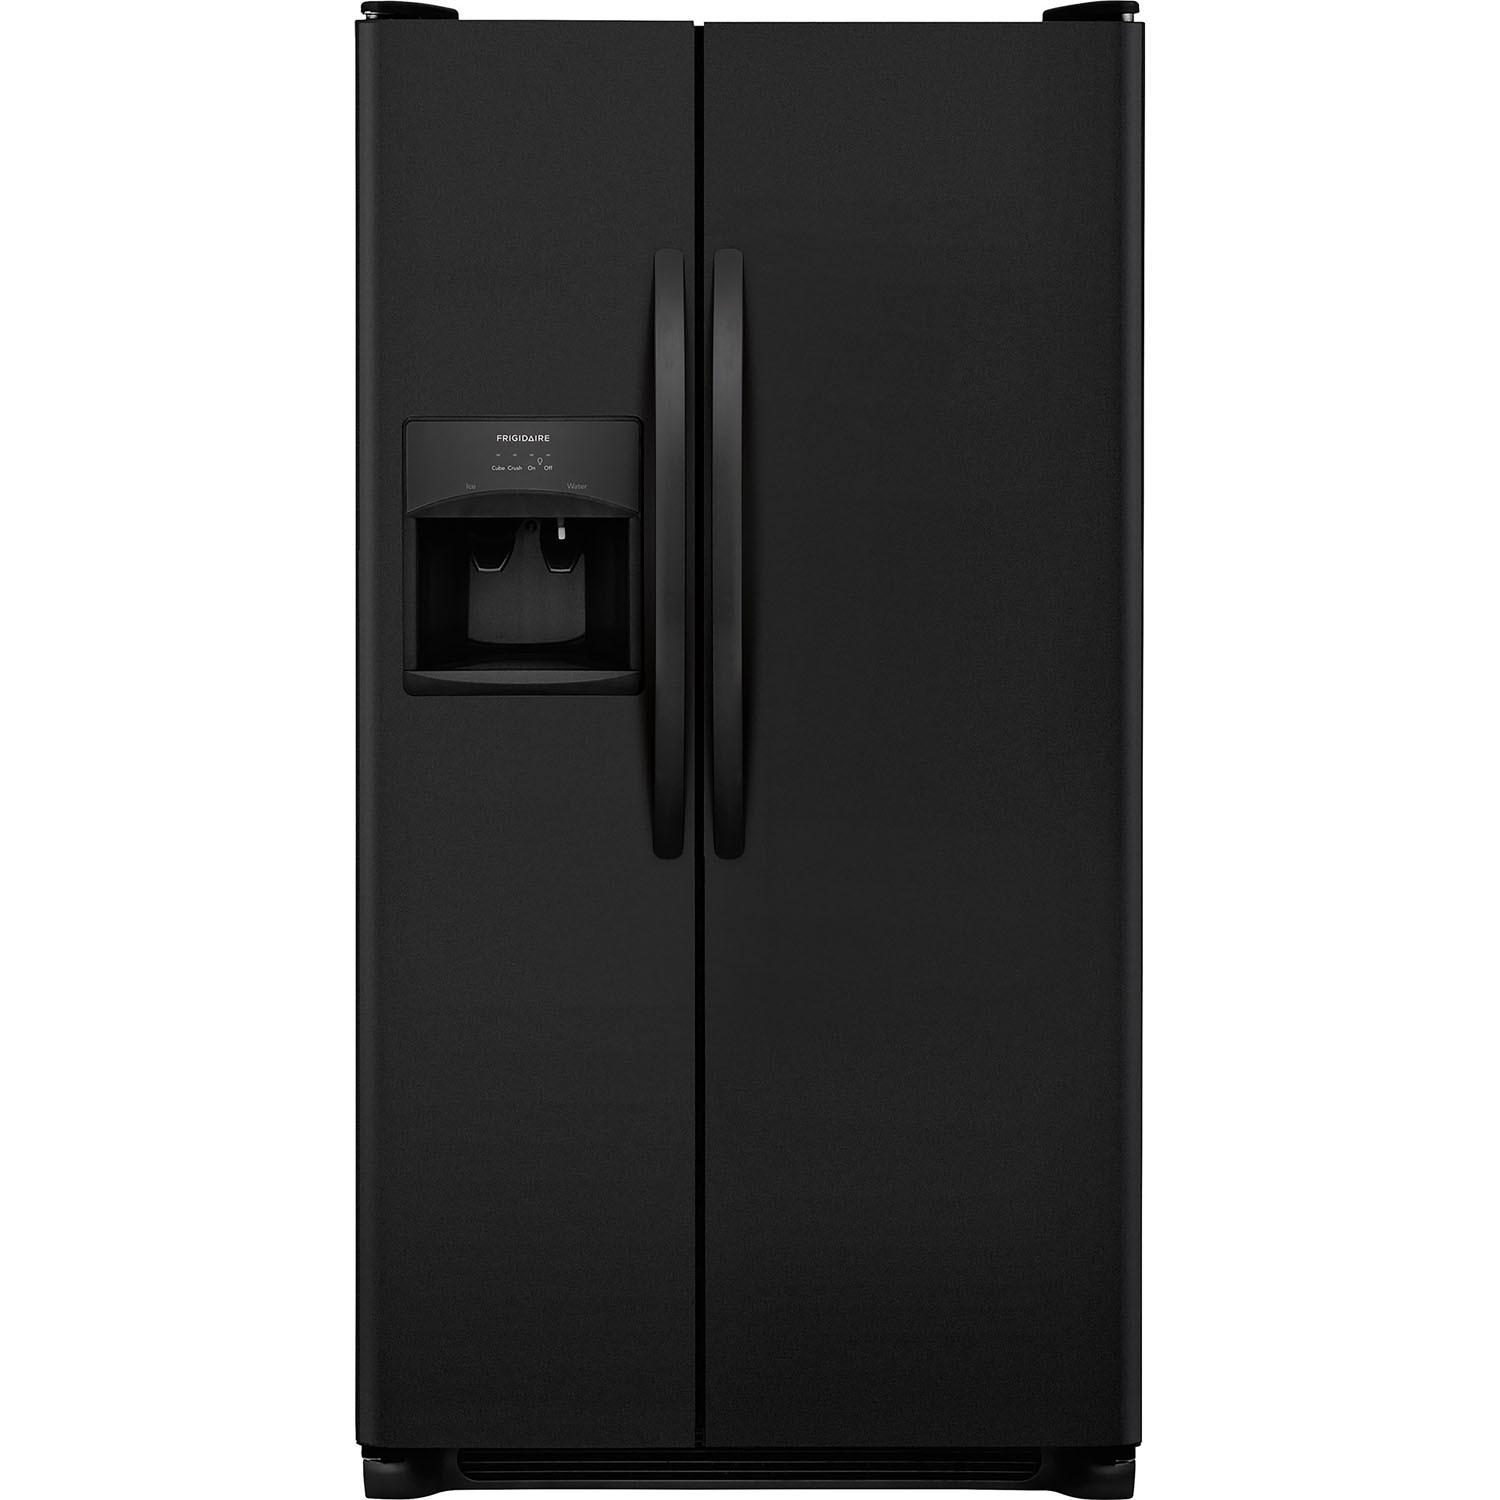 Majik Frigidaire 25 6 Cu Ft Side By Side Refrigerator